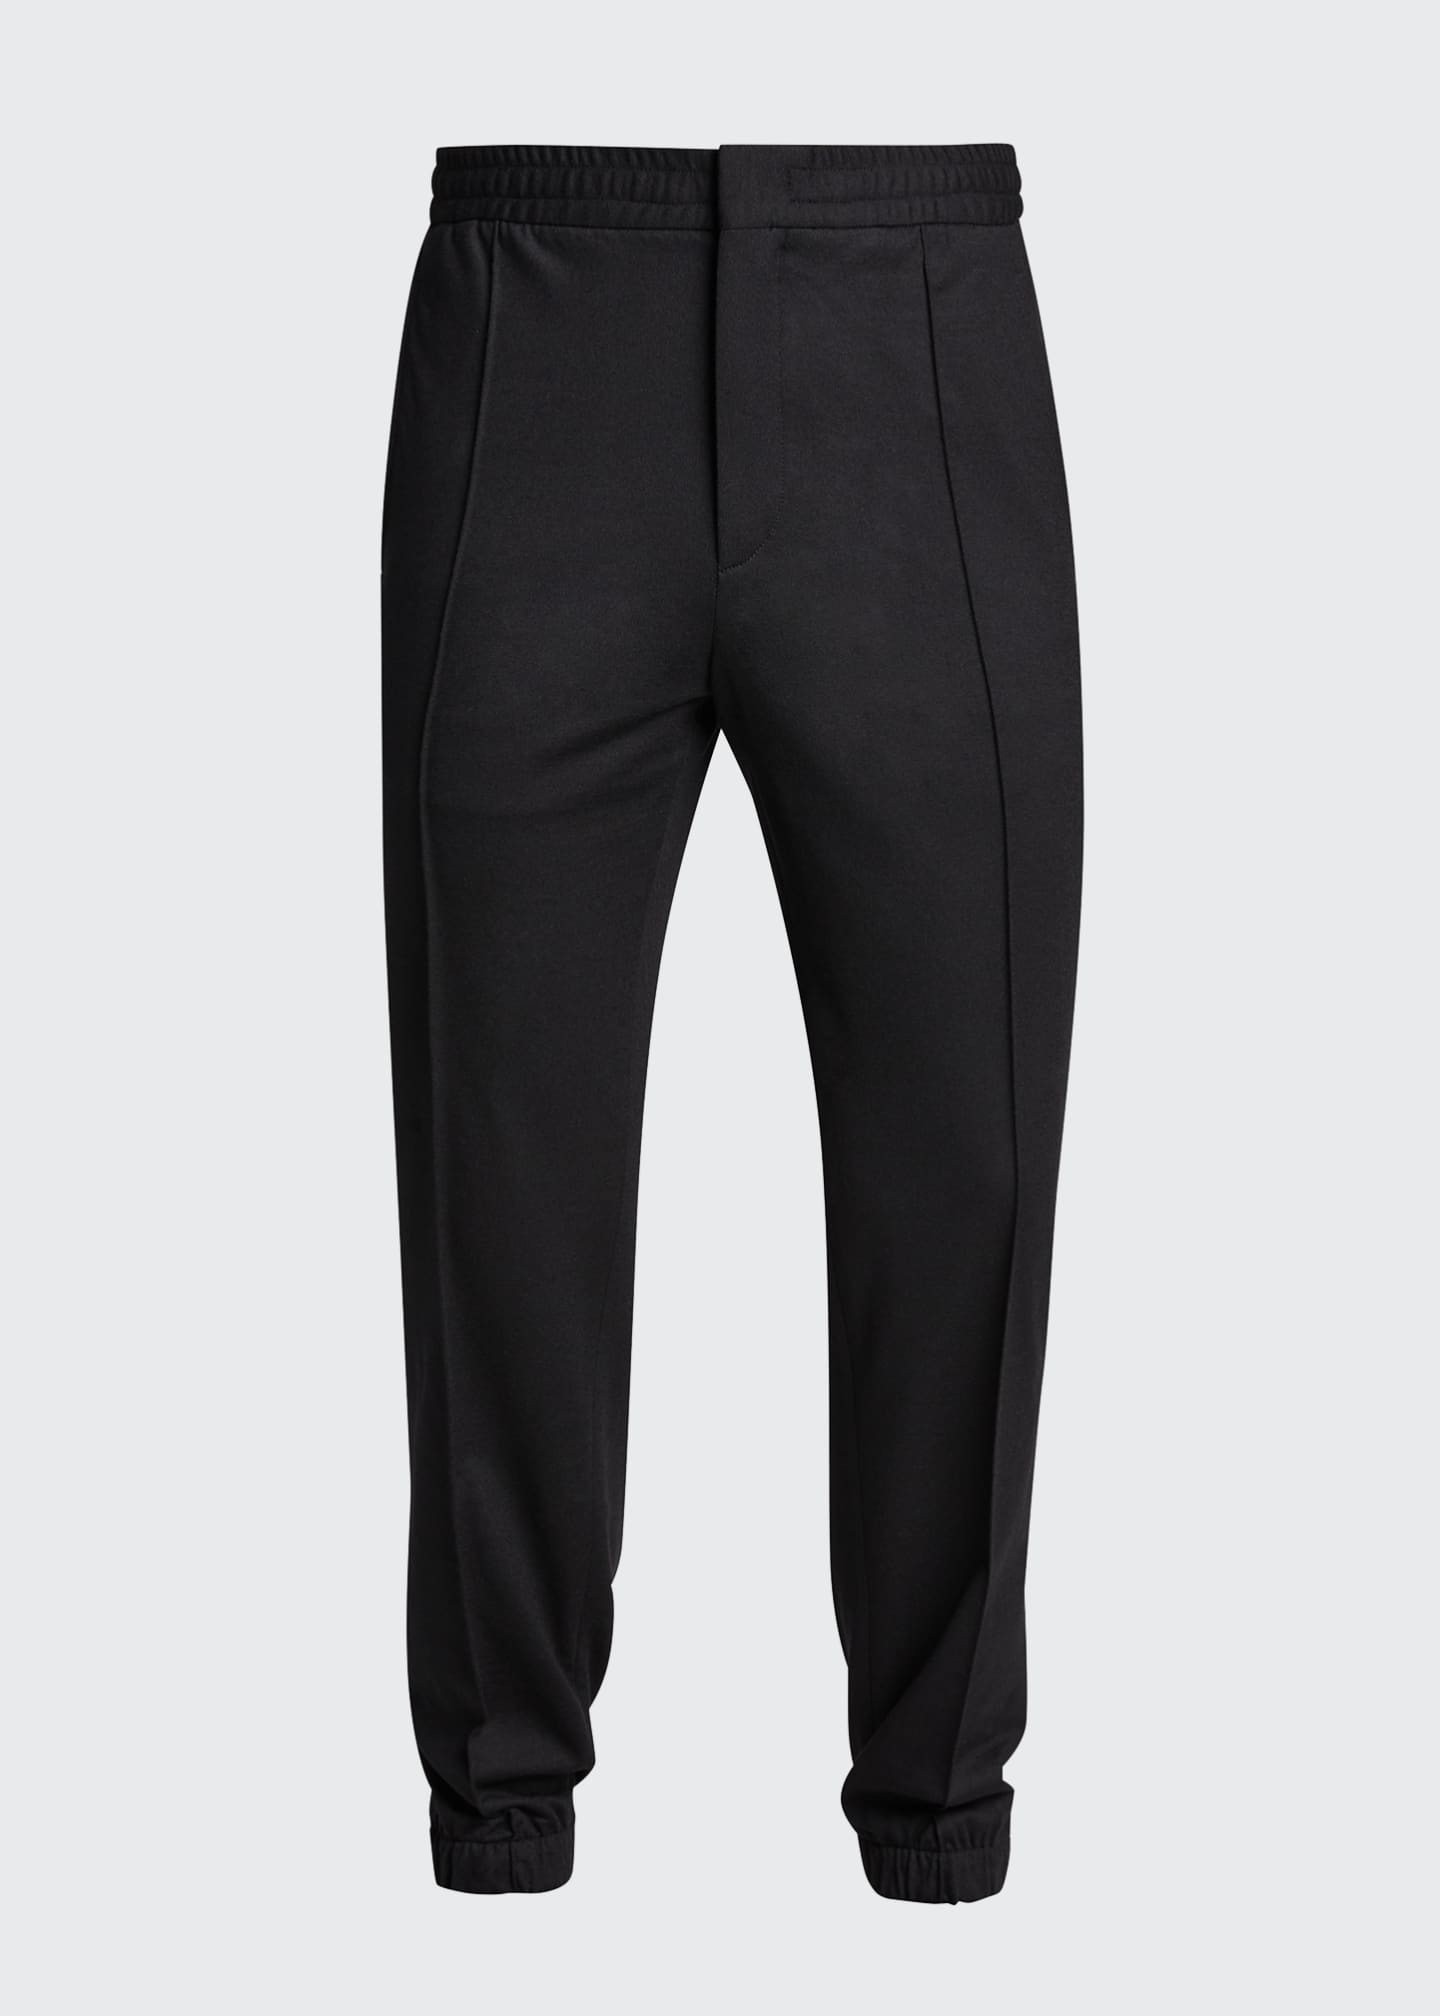 Image 5 of 5: Men's Solid Wool Jogger Trousers